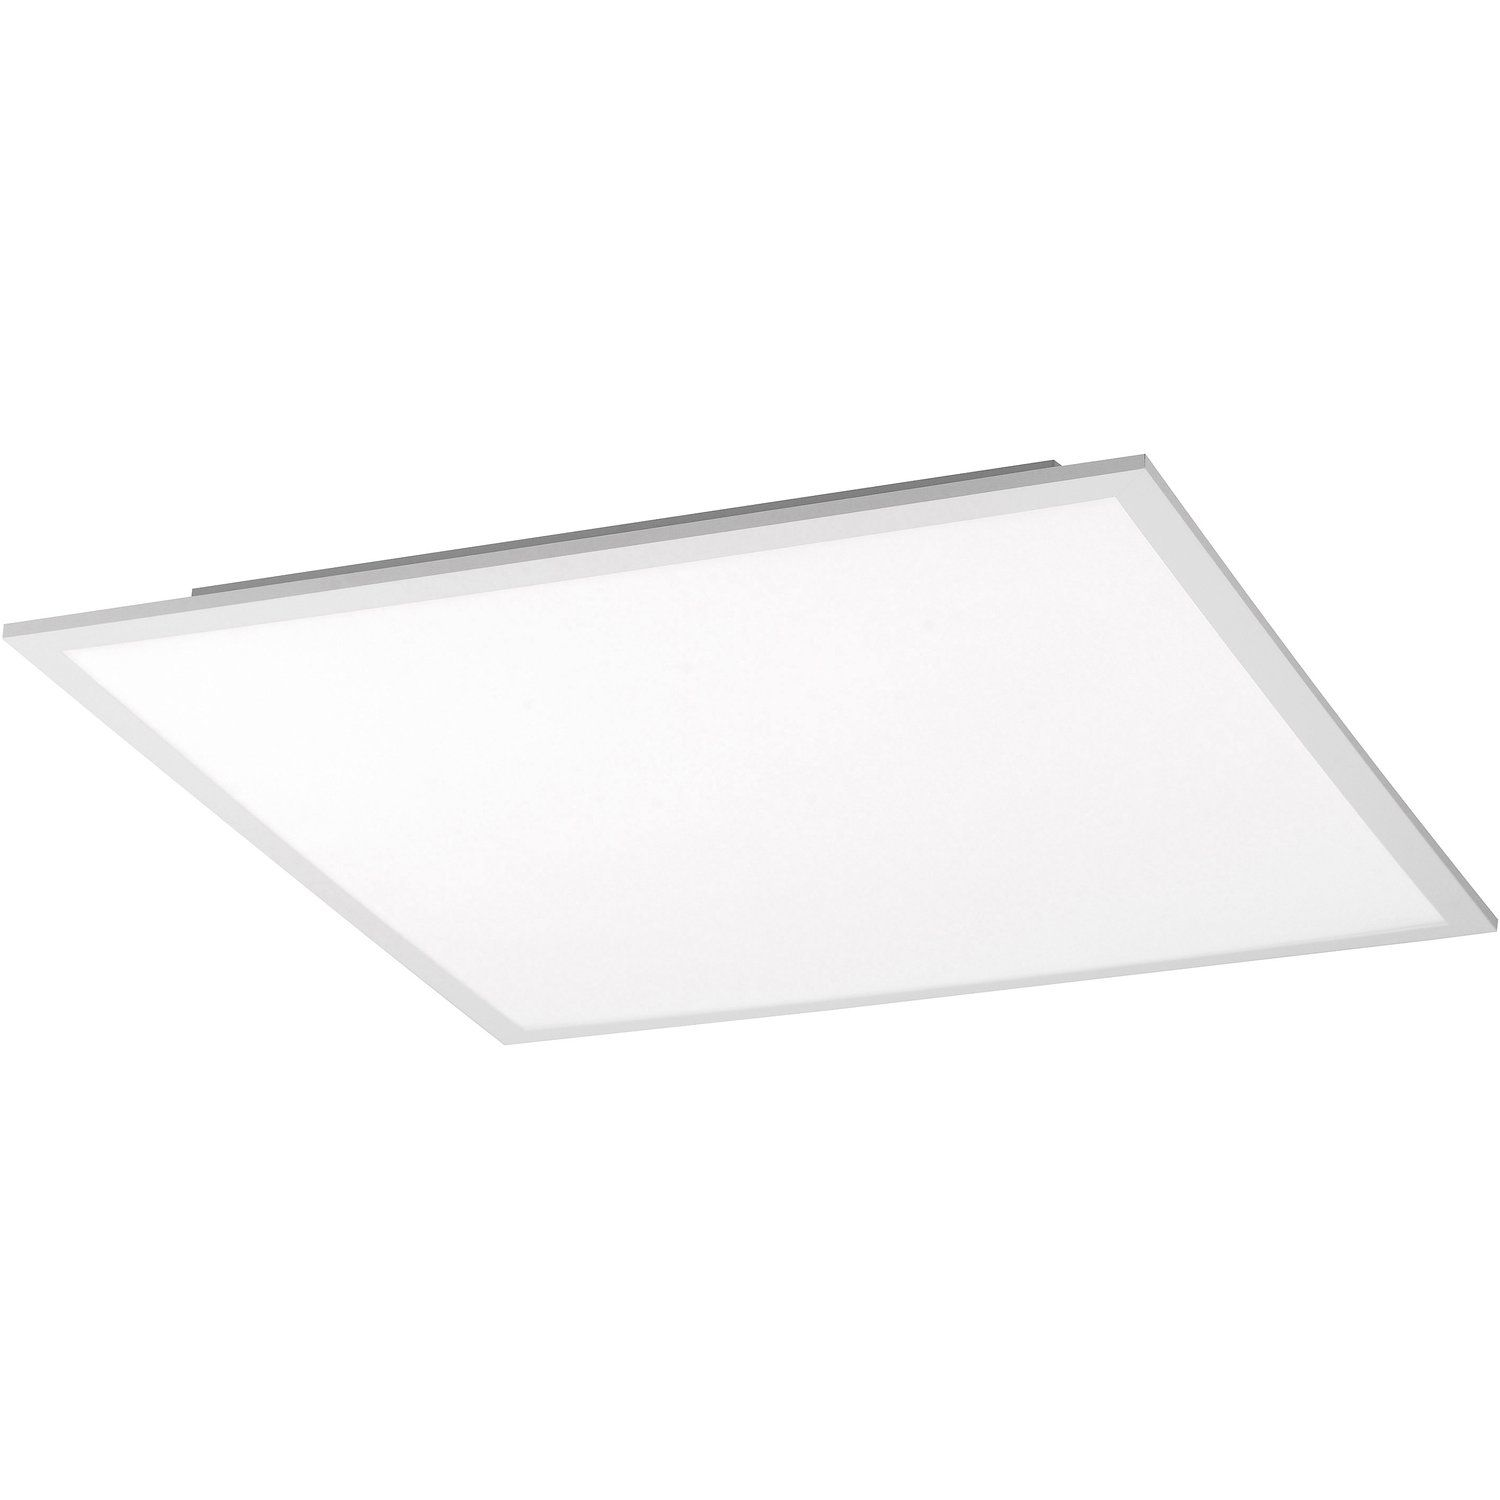 Led Panel Flat 30x30cm 4000k Ultraflaches Design Eek A In 2020 Led Design Plafond